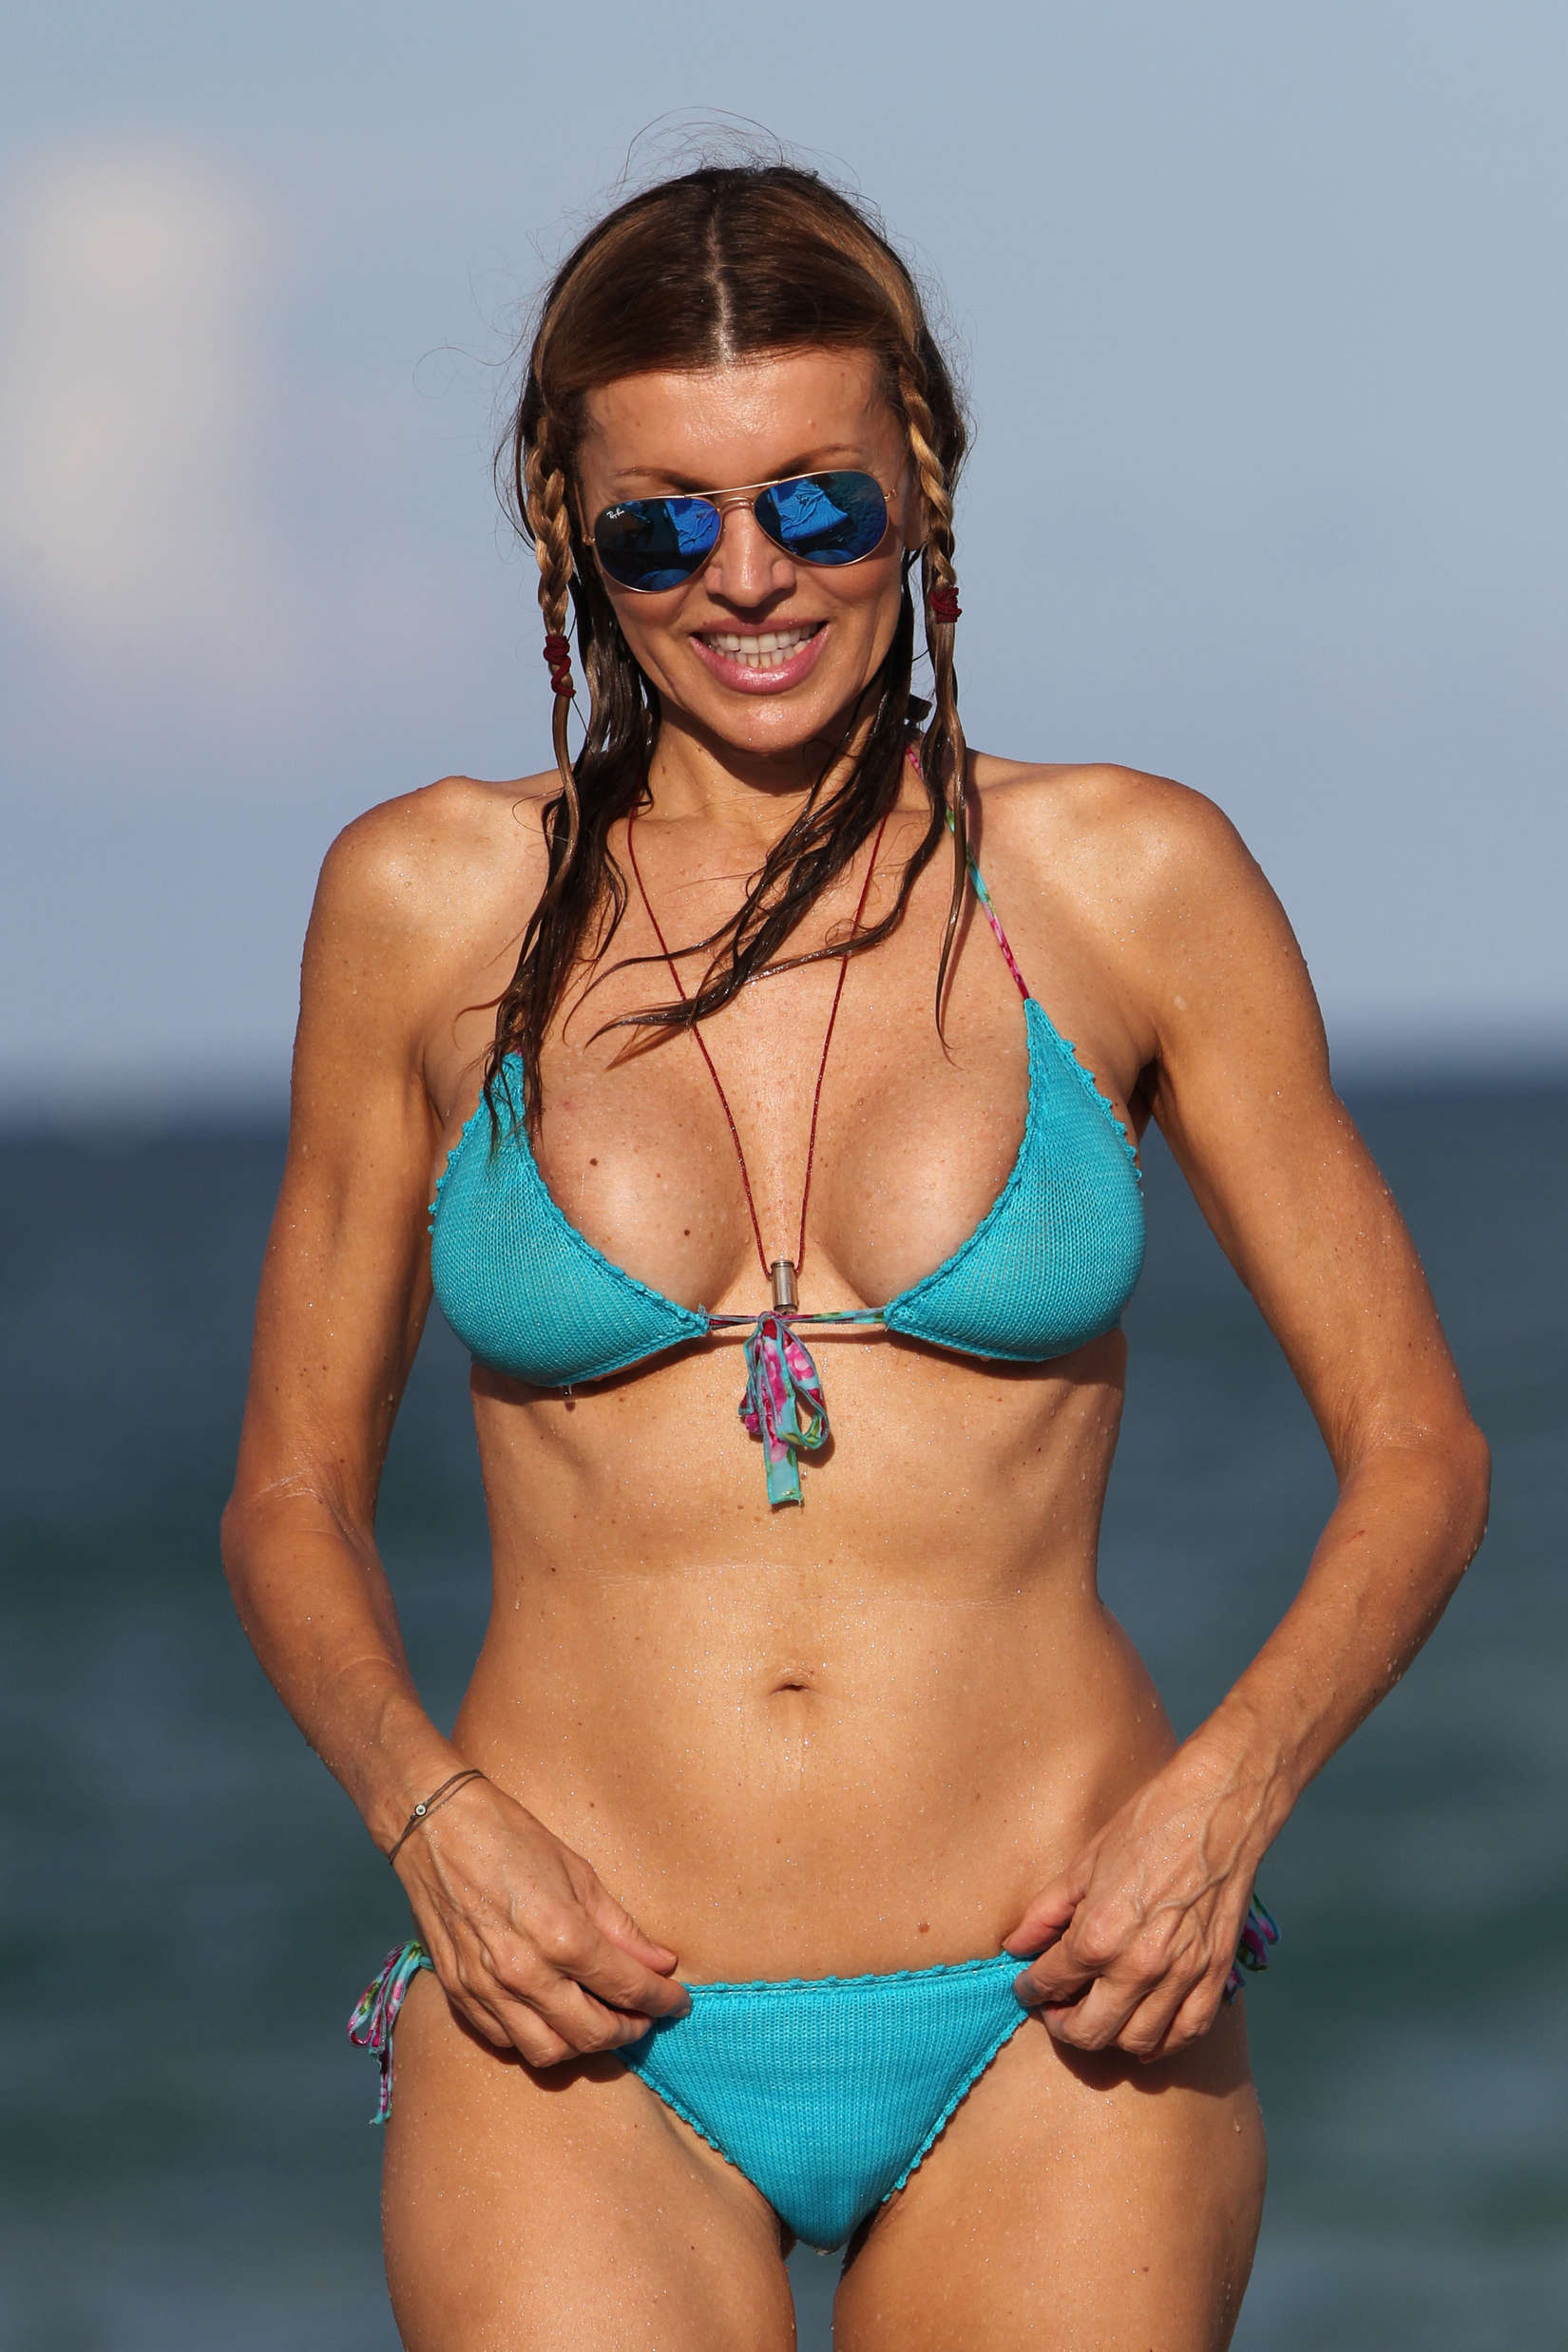 Rita Rusic - bikini candid on the beach in Miami